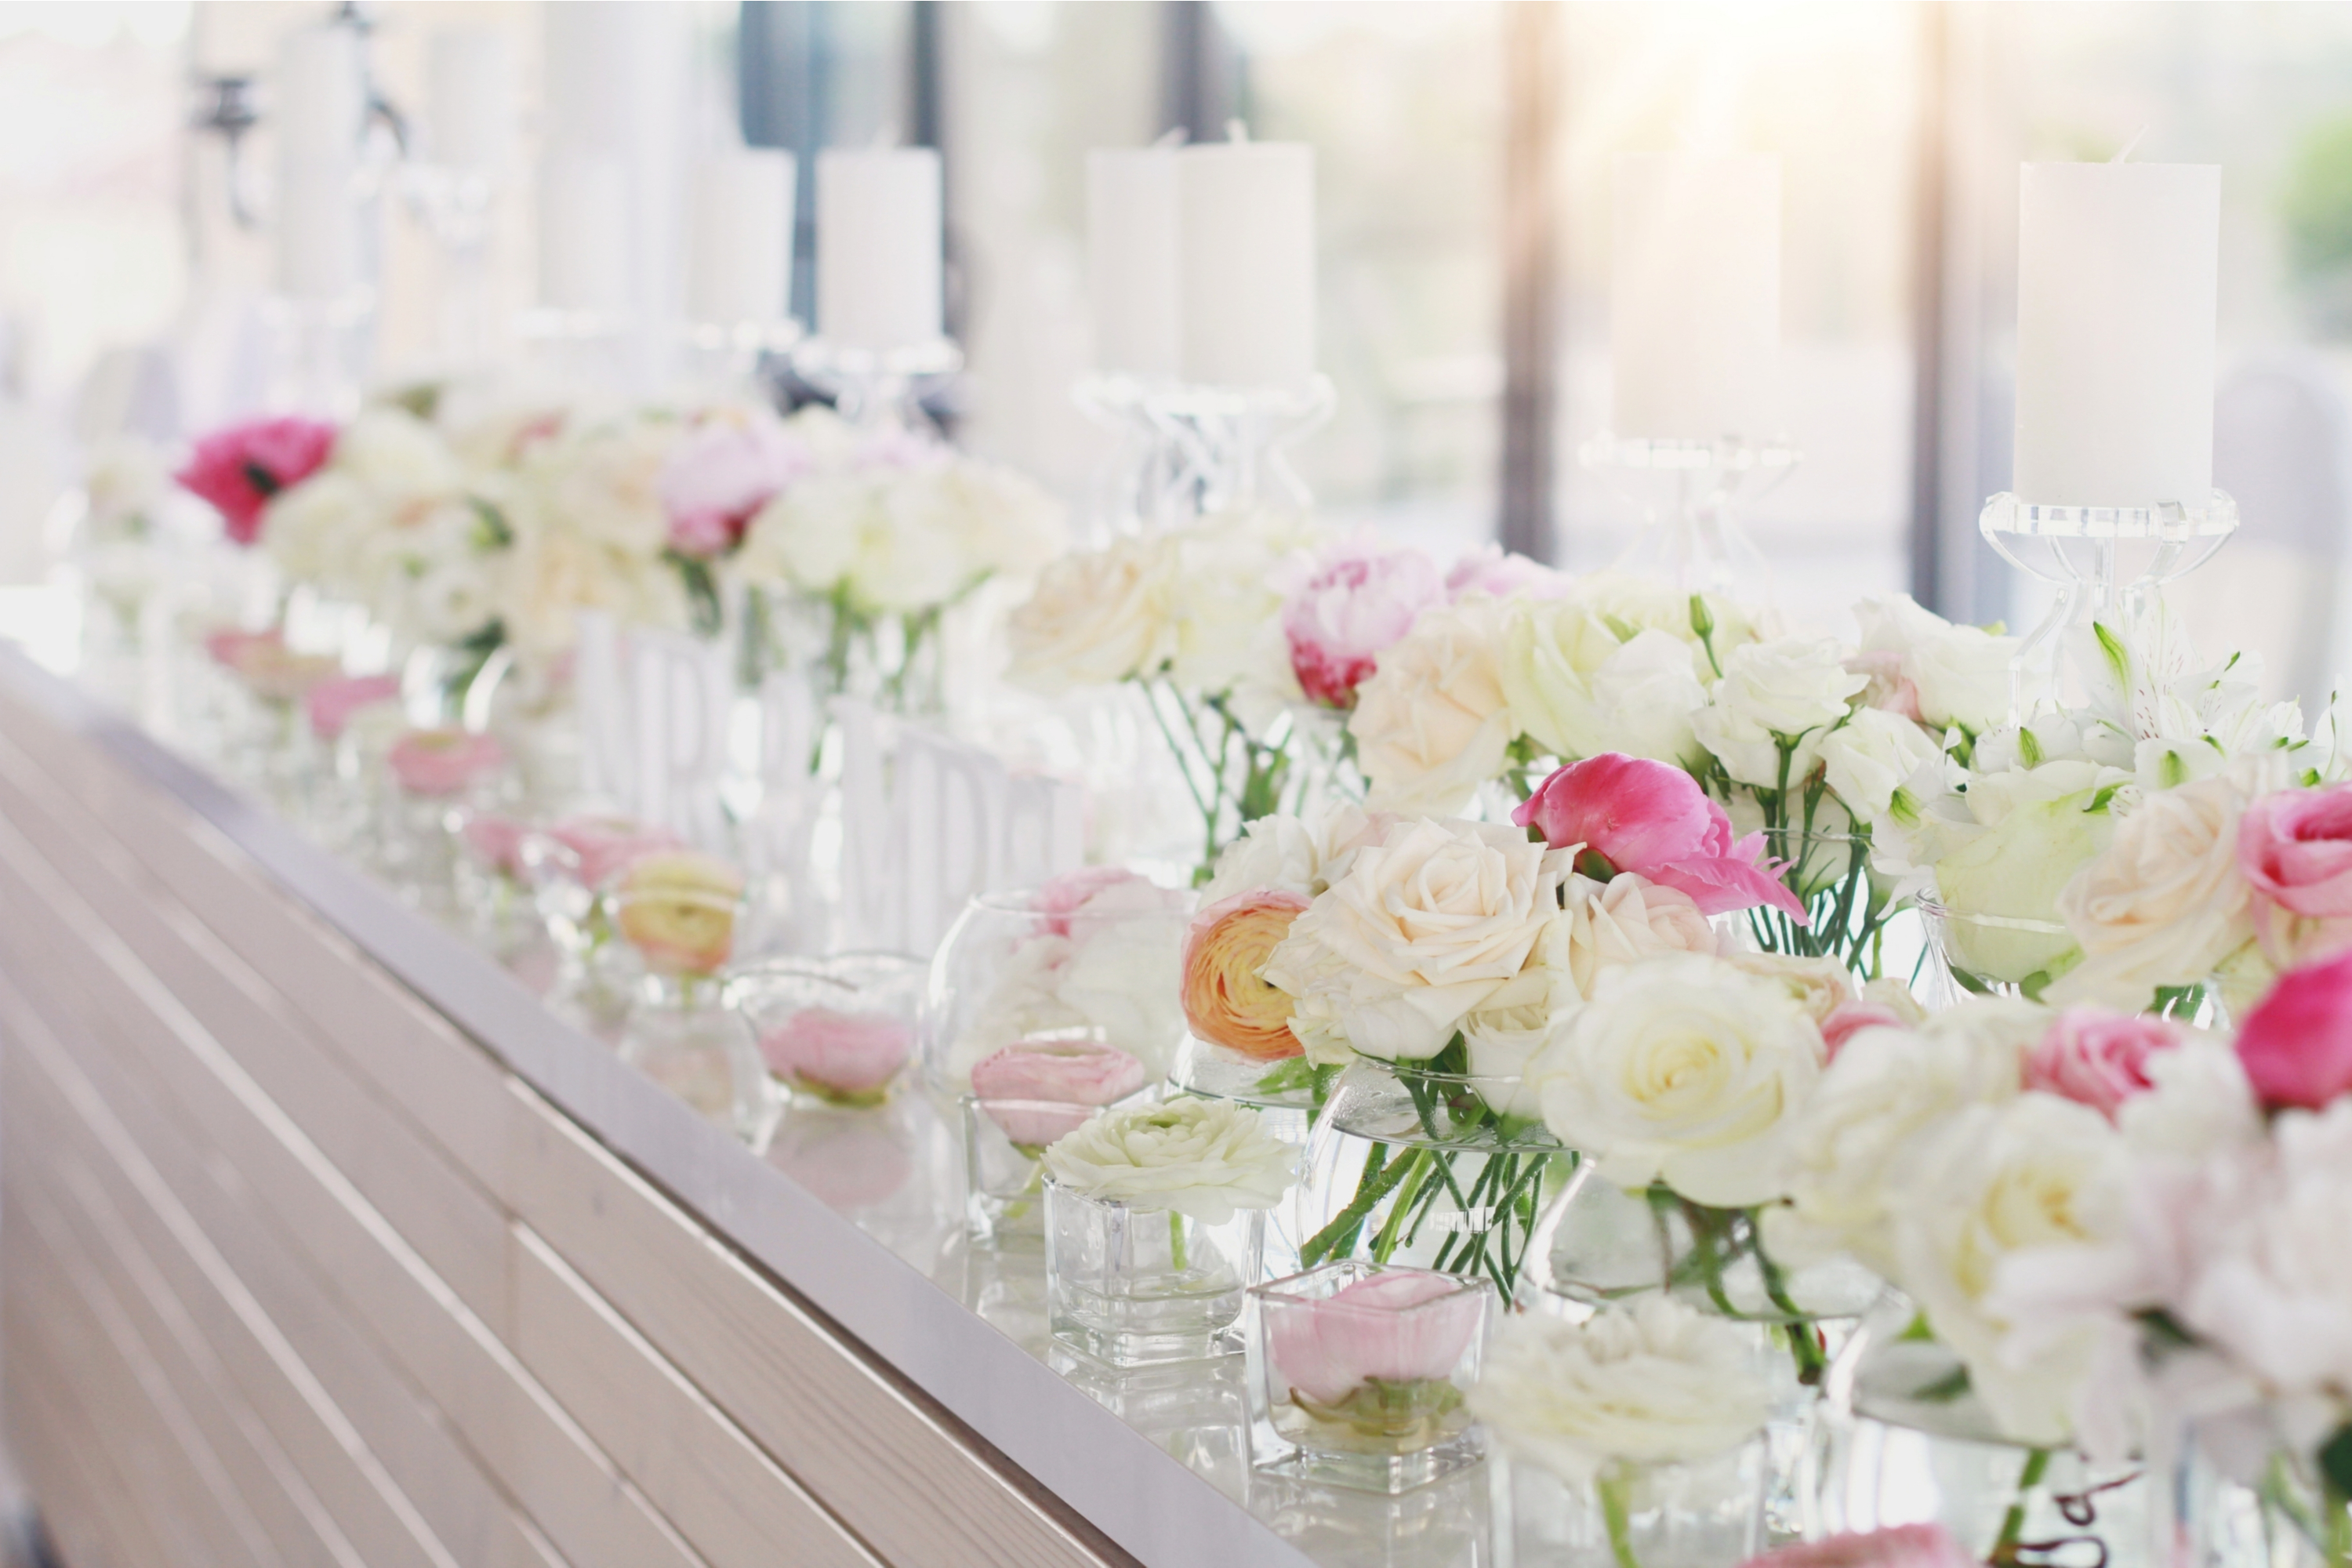 Are you throwing a Spring bridal shower? Here are some adorable Spring bridal shower themes that will wow the bride to be and the guests.